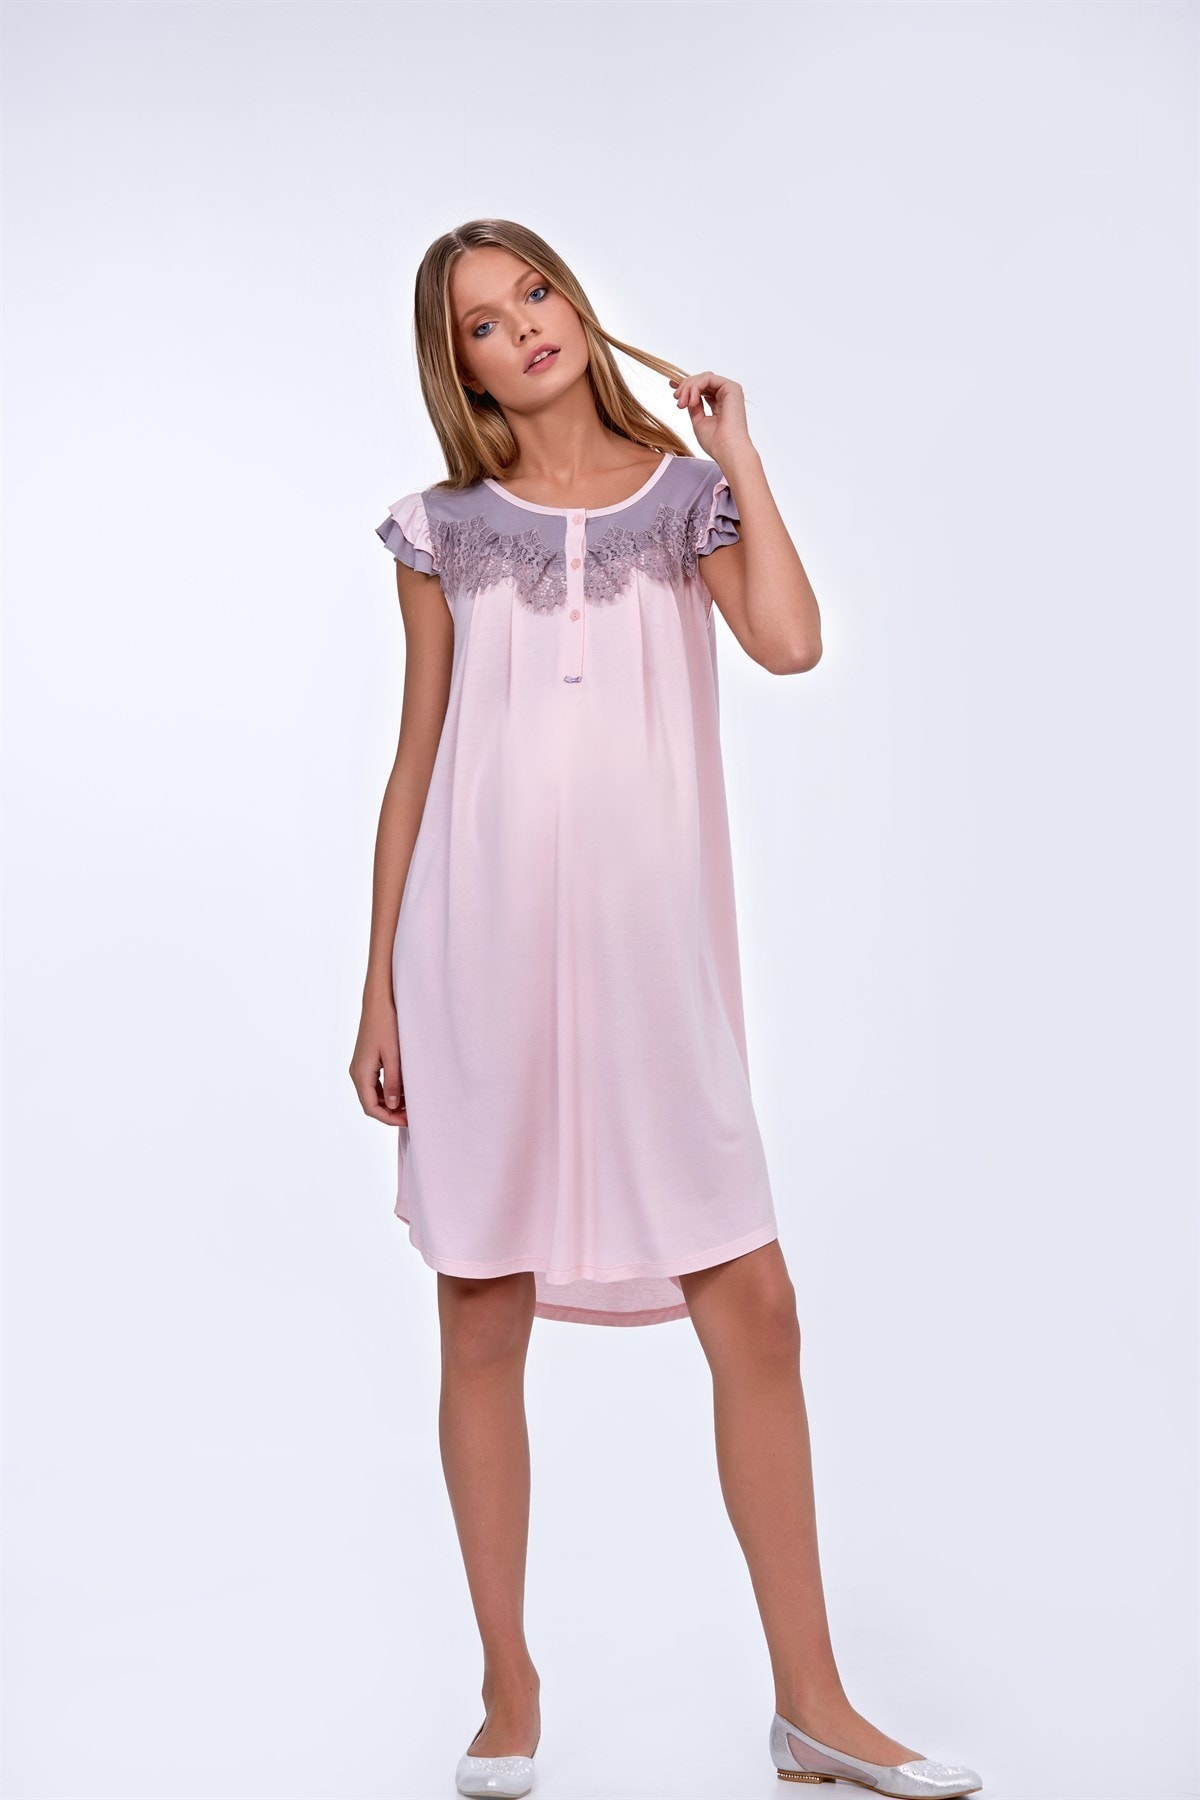 Julia Puerperal Nightgown Dressing Gown Kit Powder Pregnant enlarge